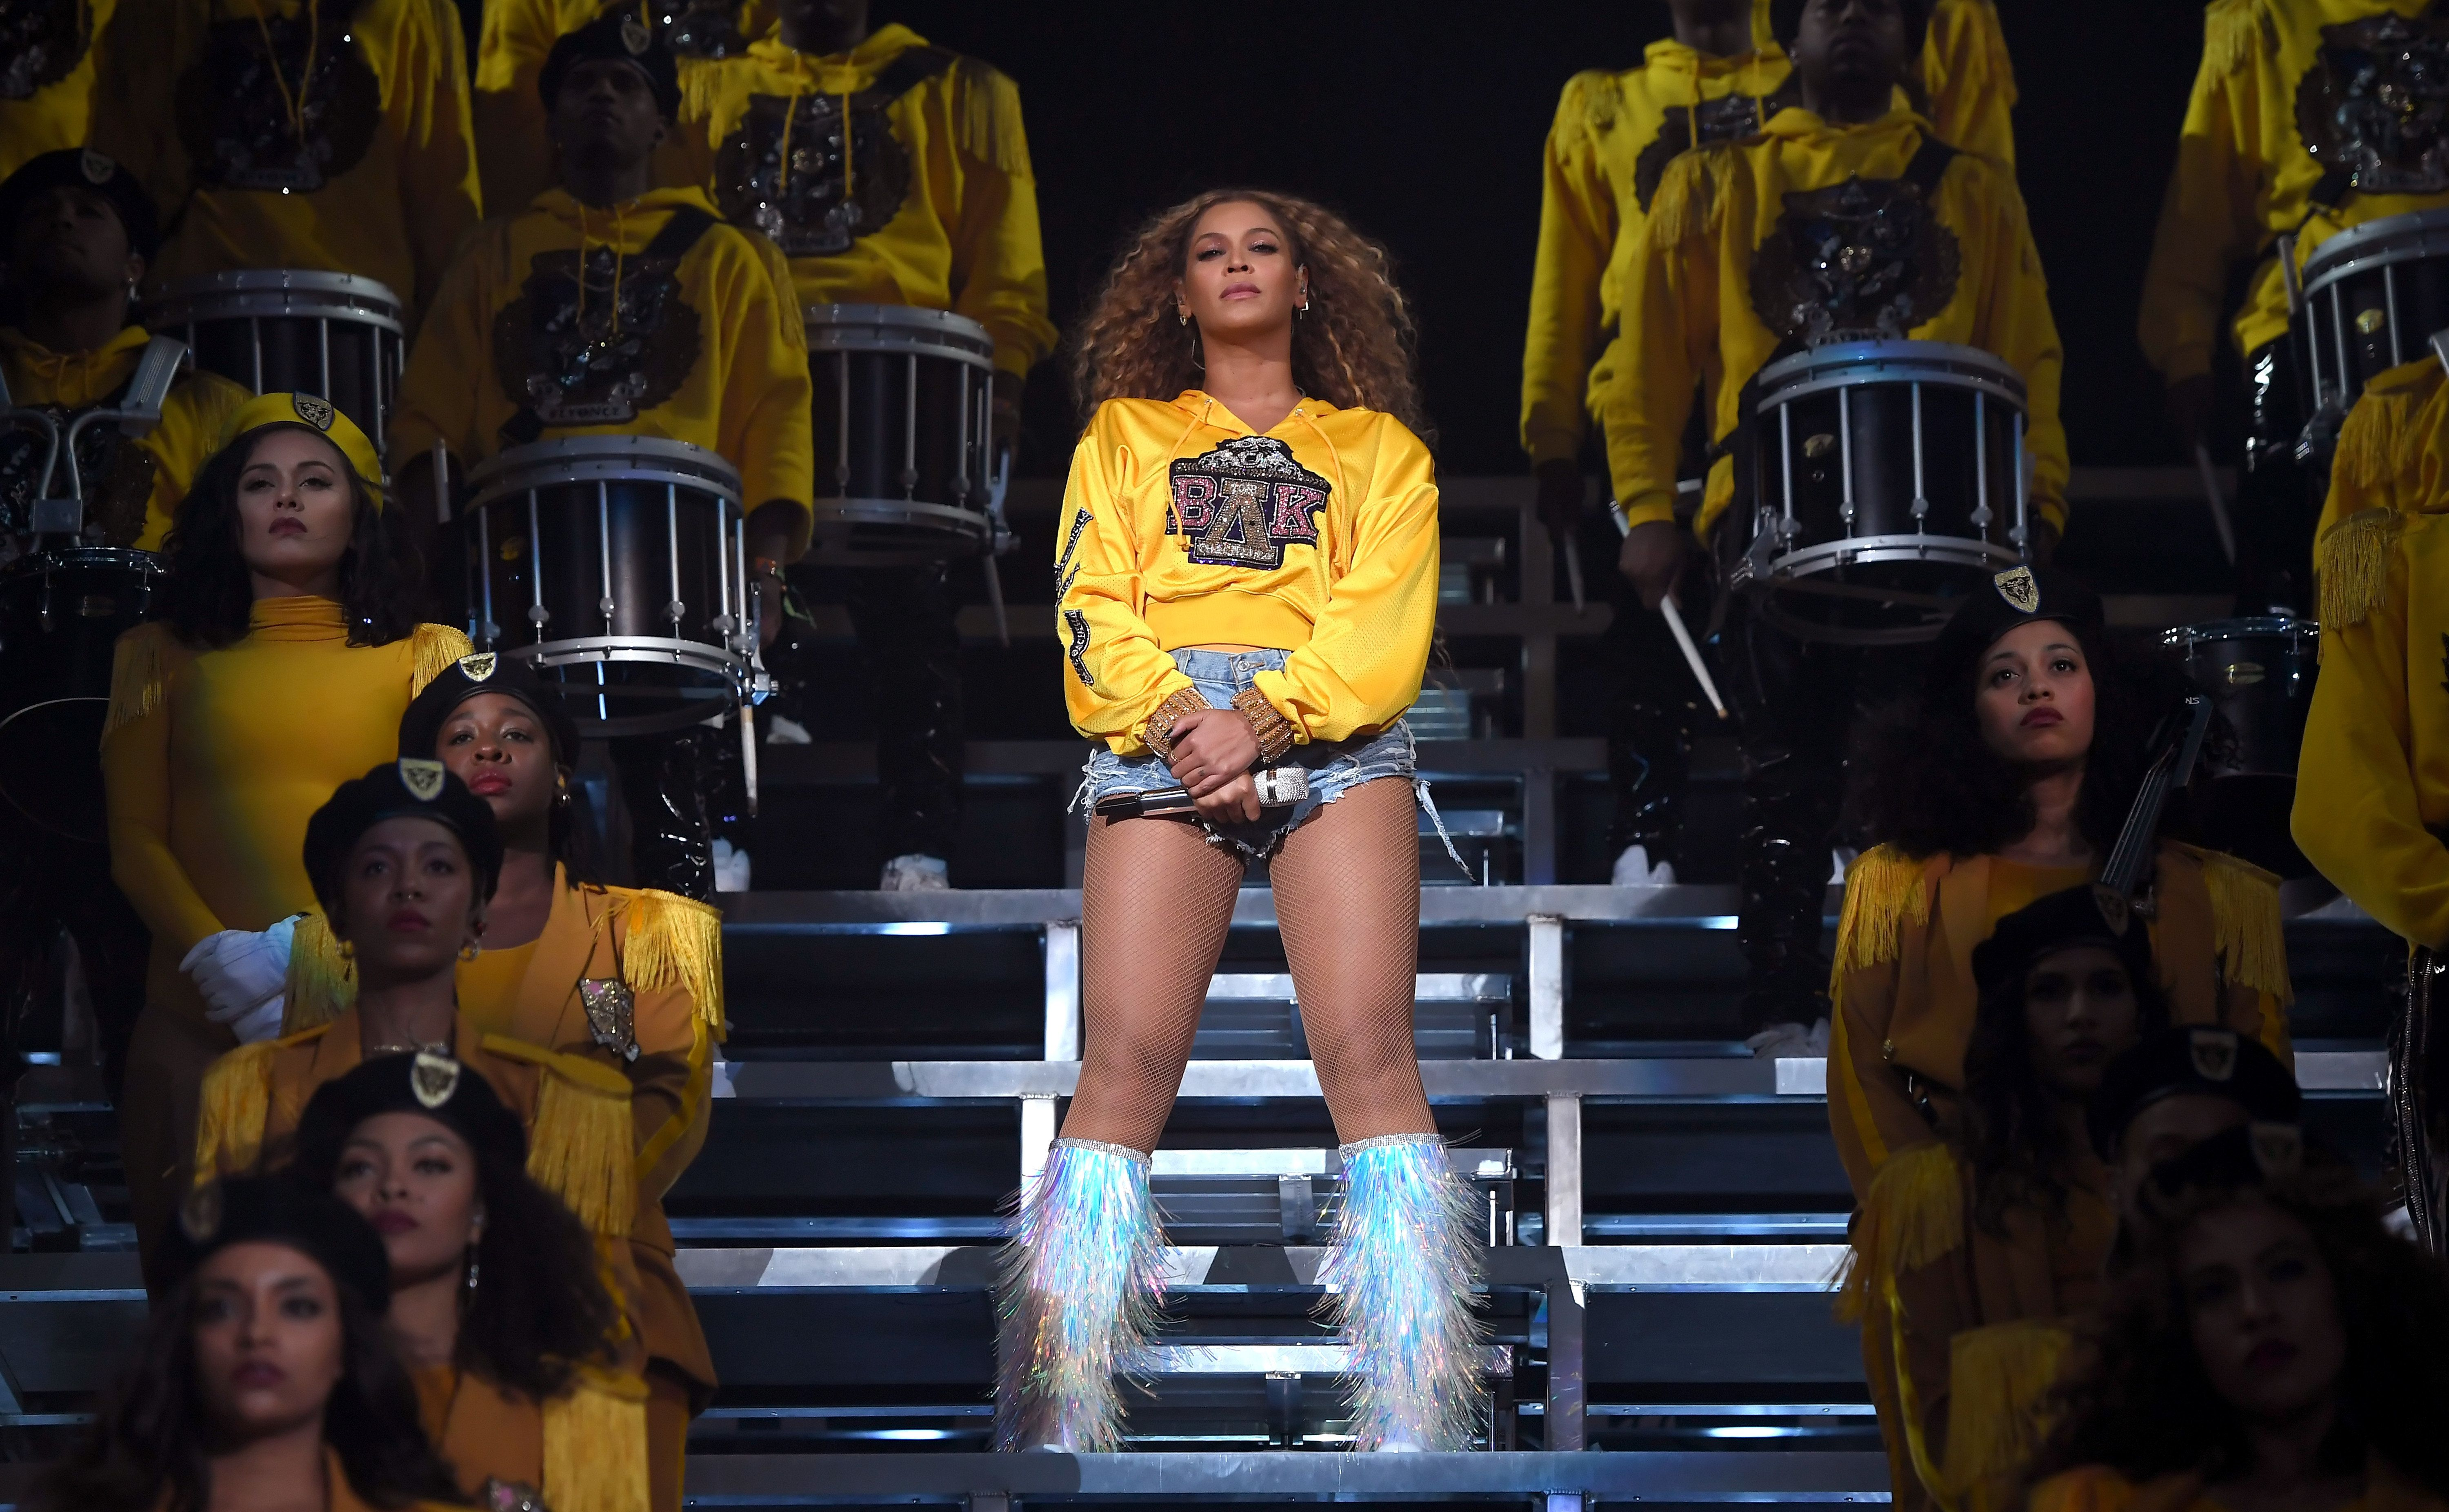 Beyoncé's Coachella performances, in April in Indio, California, made an important statement about how we should